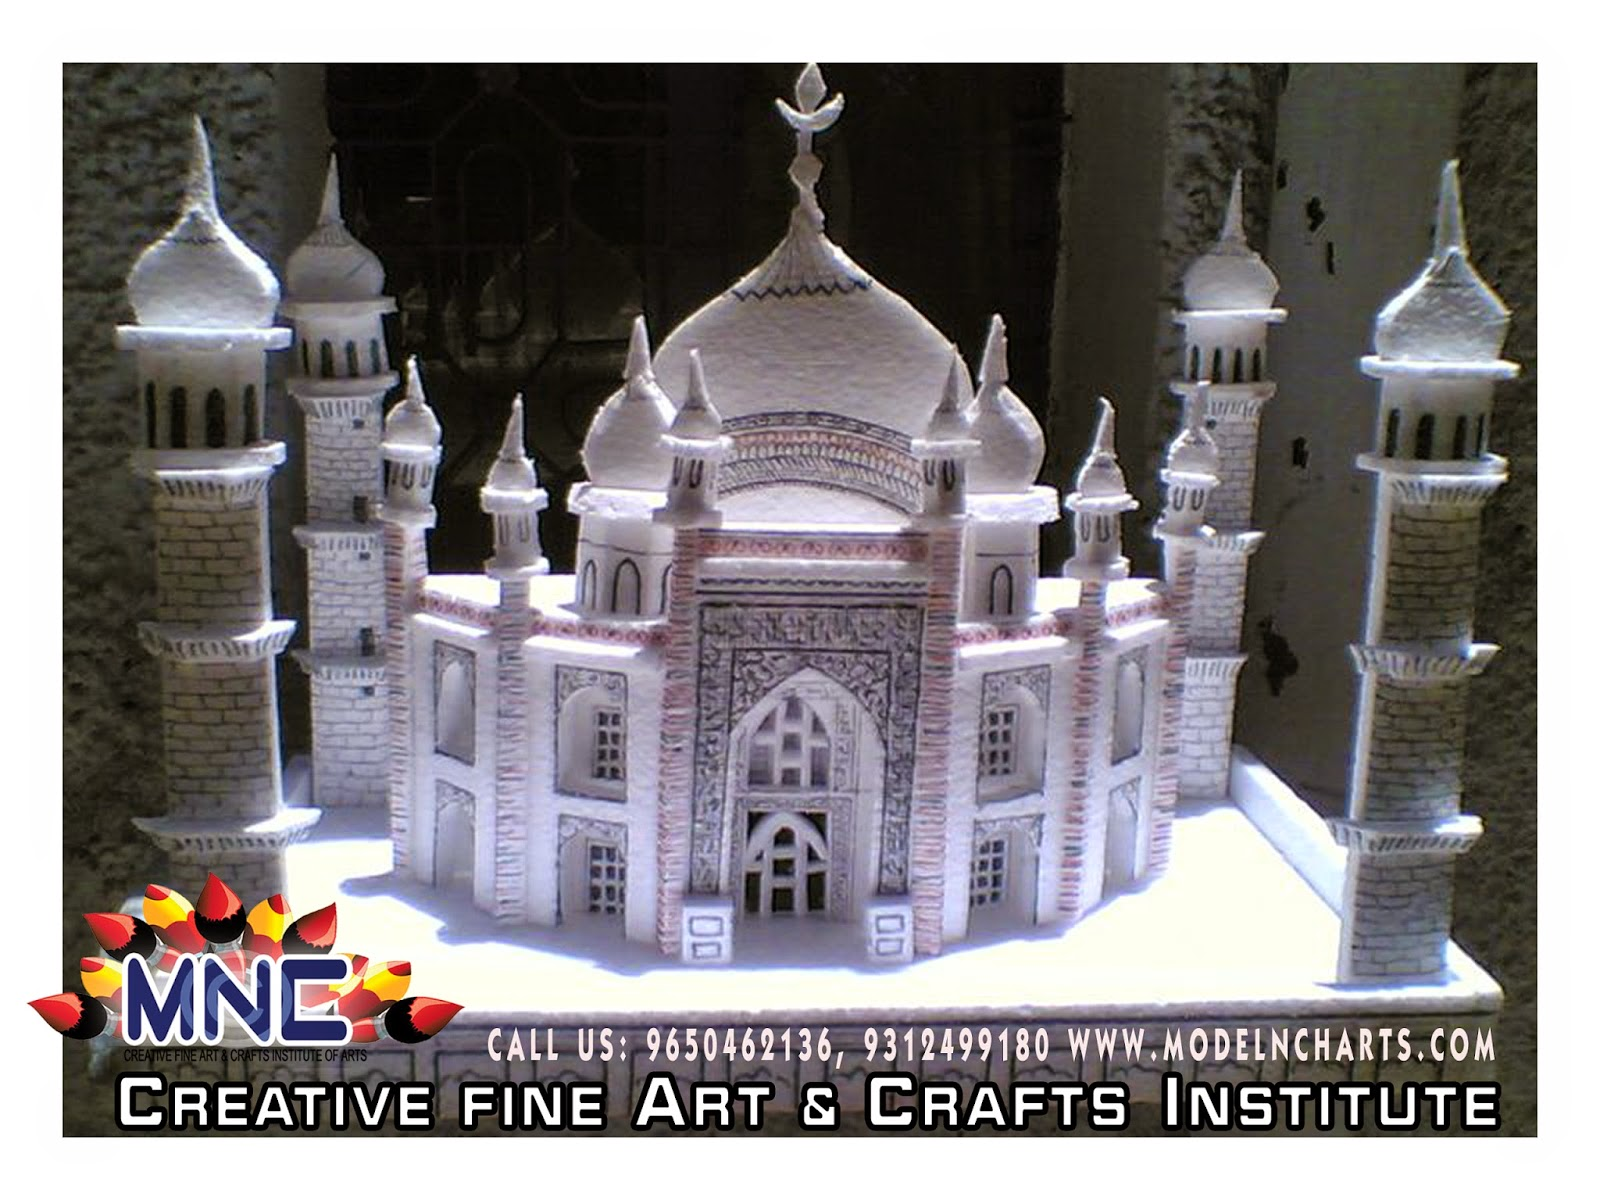 Creative Fine Art Crafts Home Tuition M 9650462136 Art Class For